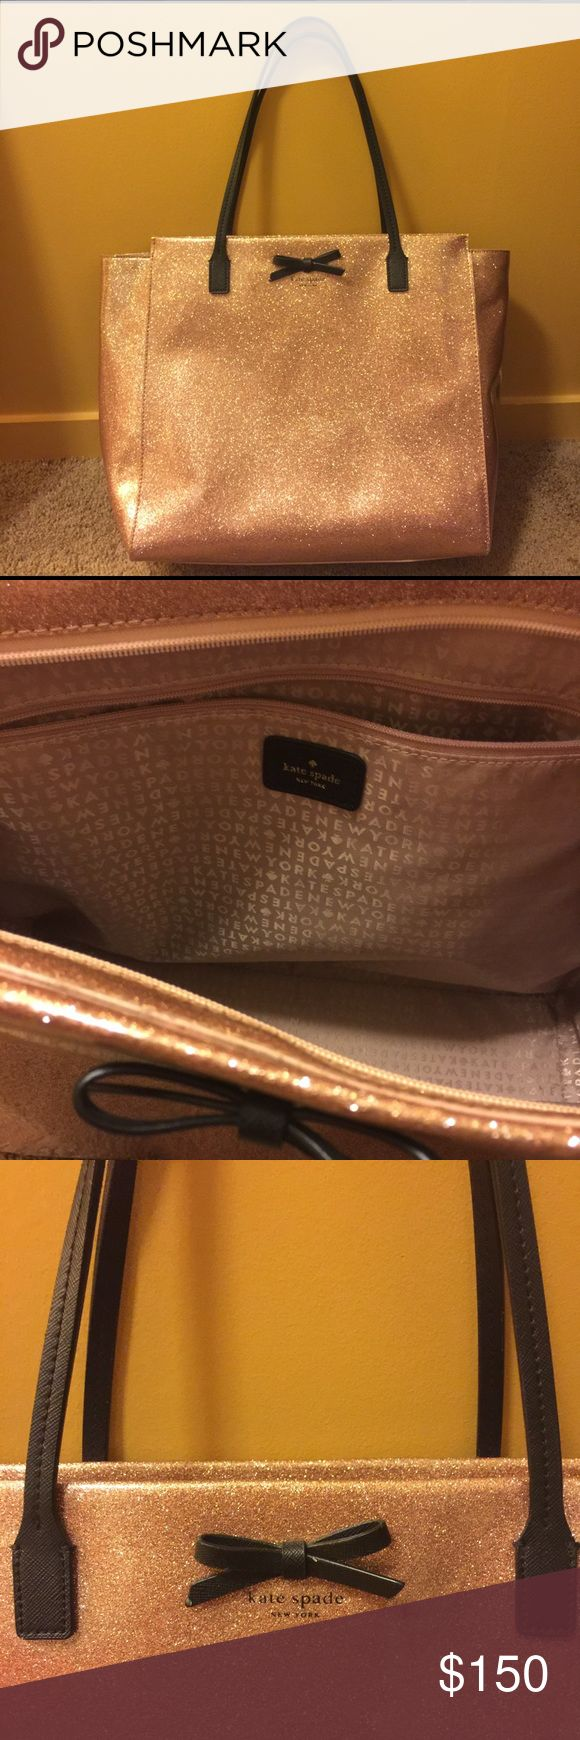 Flawless Rose Gold Kate Spade Glitter Tote Like new! Beautiful Rose Gold Kate Spade tote with black leather bow and handles. Zipper closure and signature matching Kate Spade satin interior. Fits all size Macbook laptops, iPads, books, everything! Rare find, don't miss out :) kate spade Bags Totes